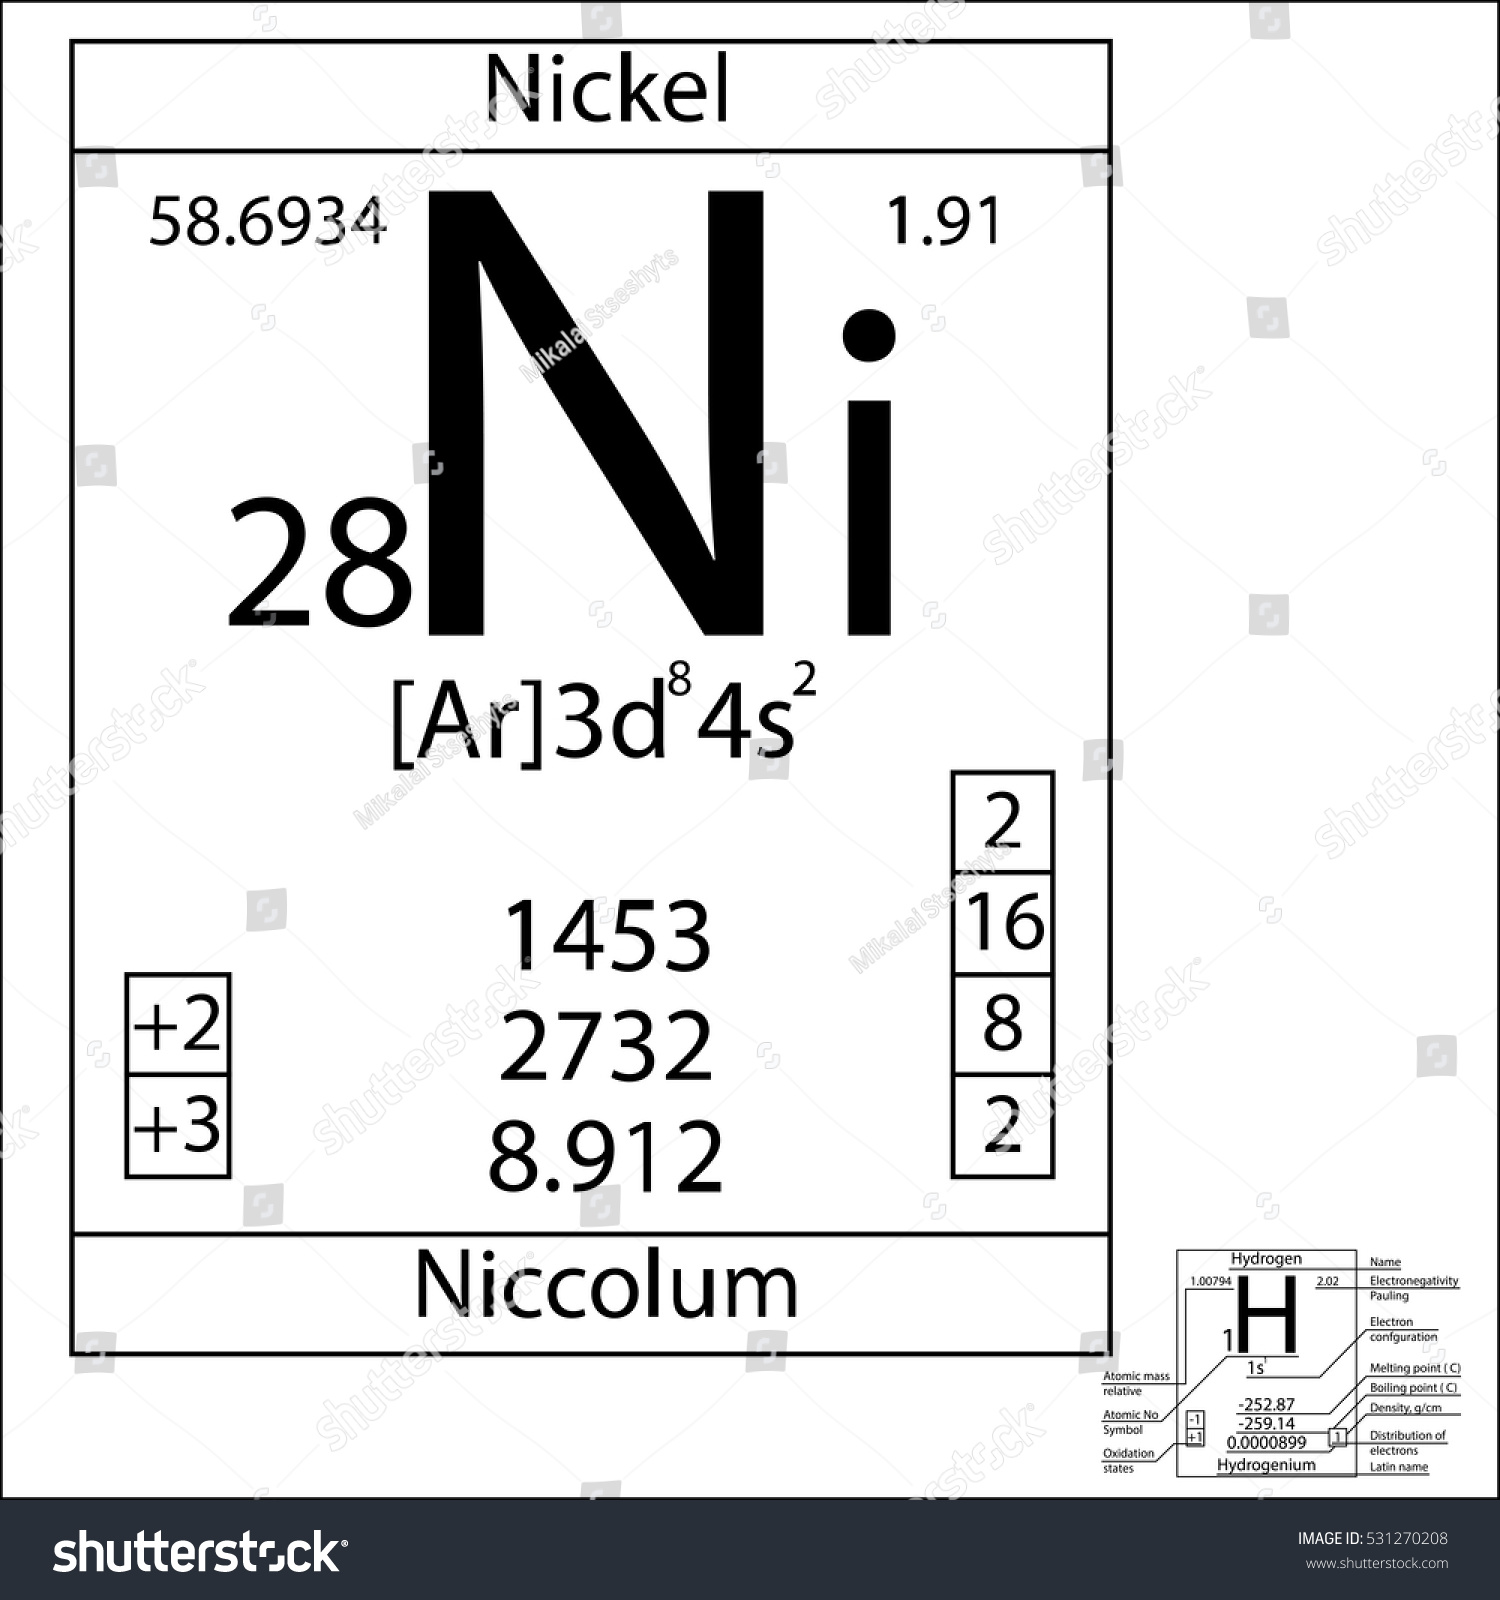 Periodic table element nickel basic properties stock vector the periodic table element nickel with the basic properties urtaz Image collections